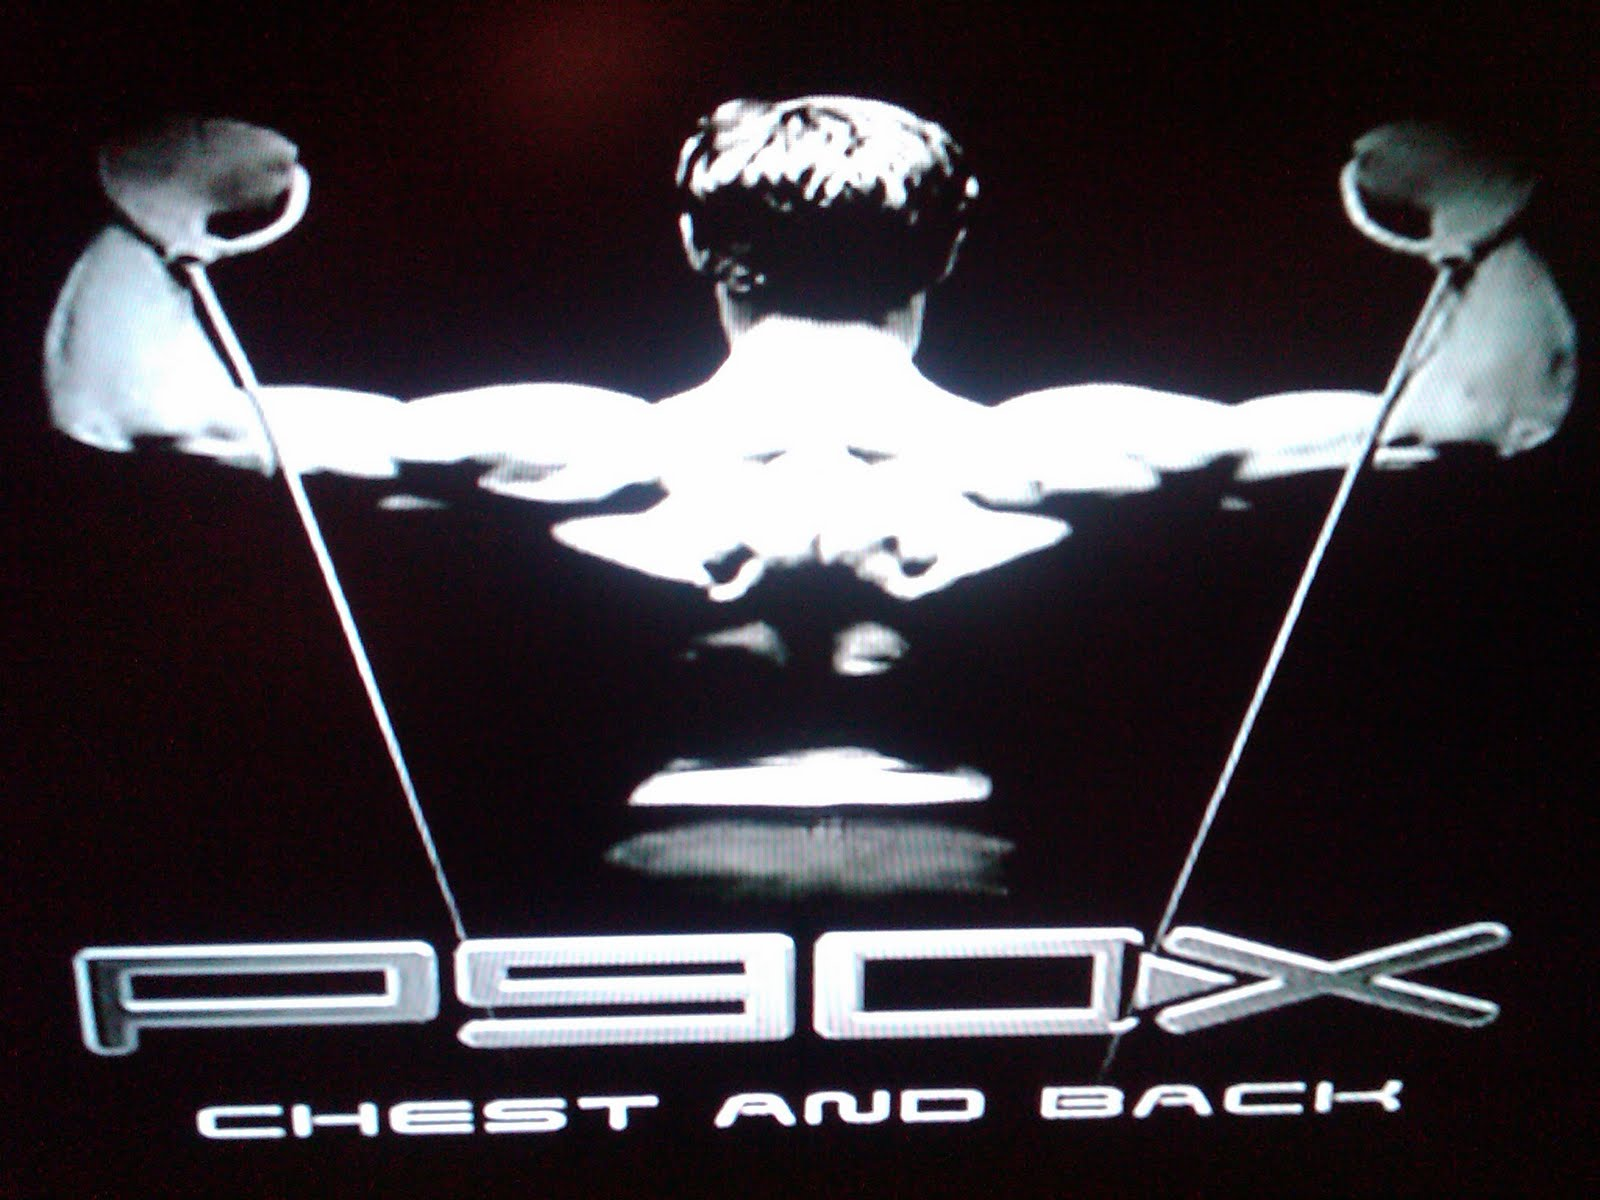 P90x Chest And Back Review X Mike